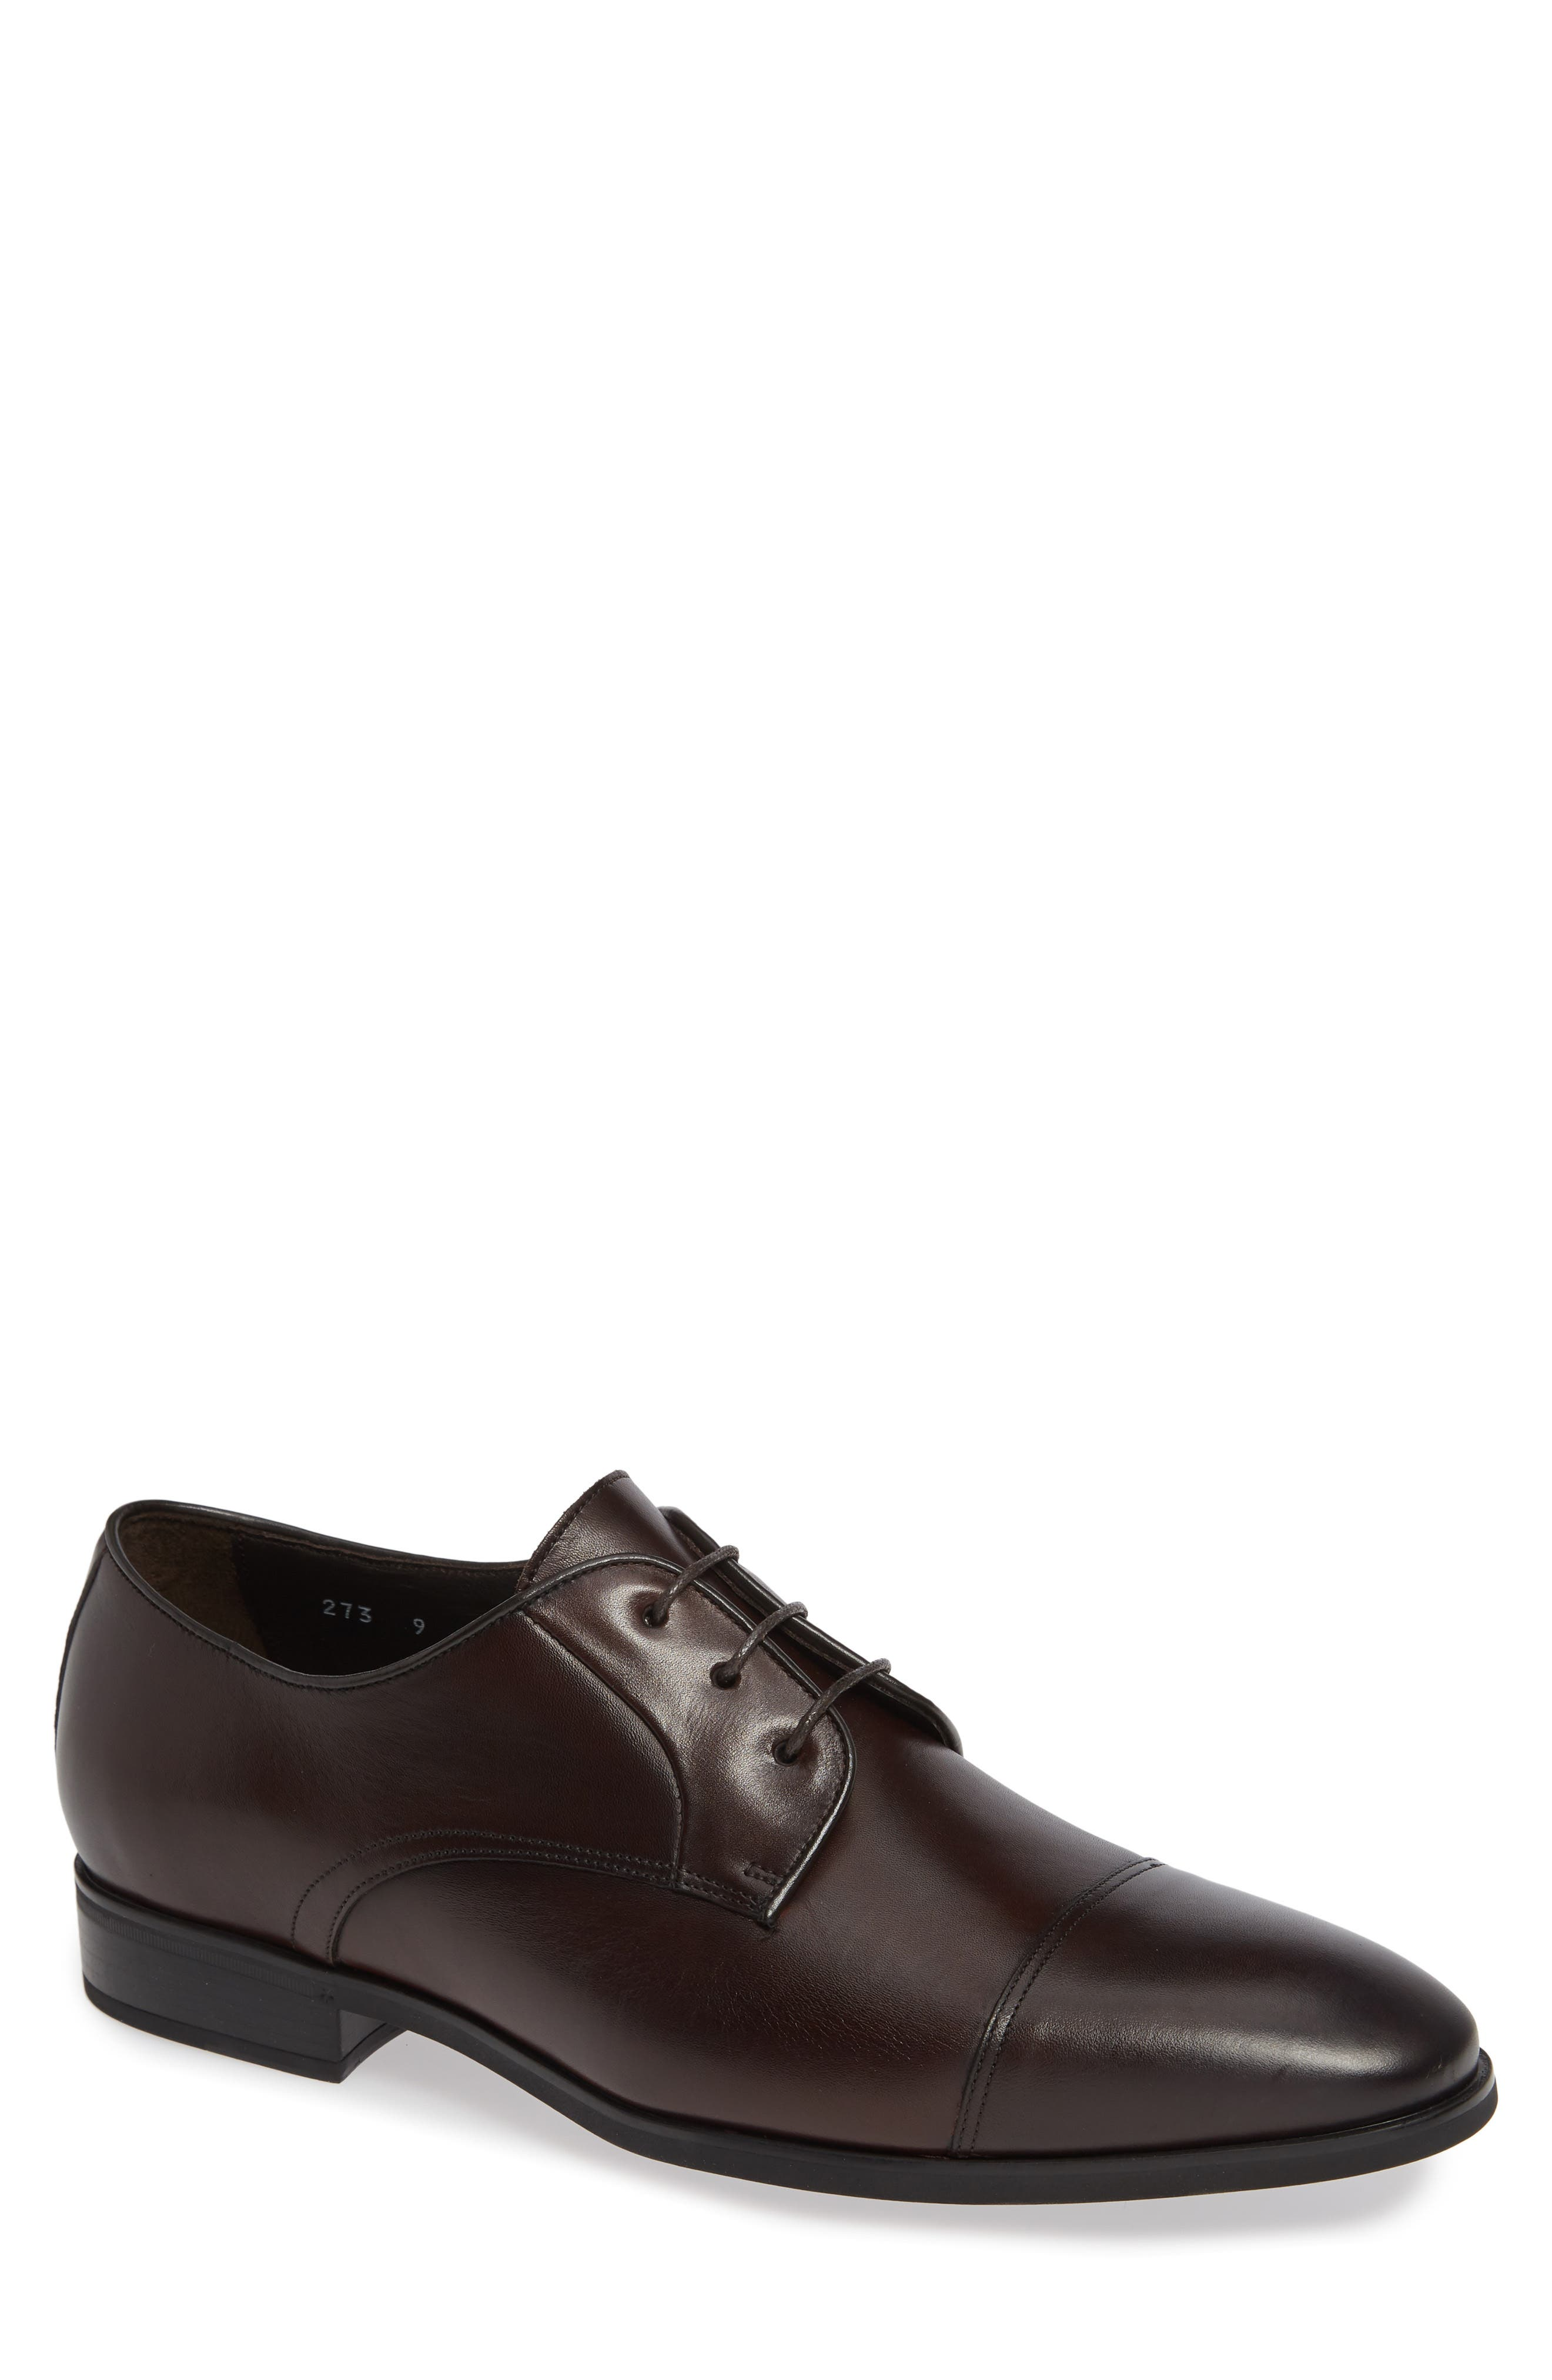 Aberdeen Cap Toe Derby,                             Main thumbnail 1, color,                             BERRY/ TMORO LEATHER